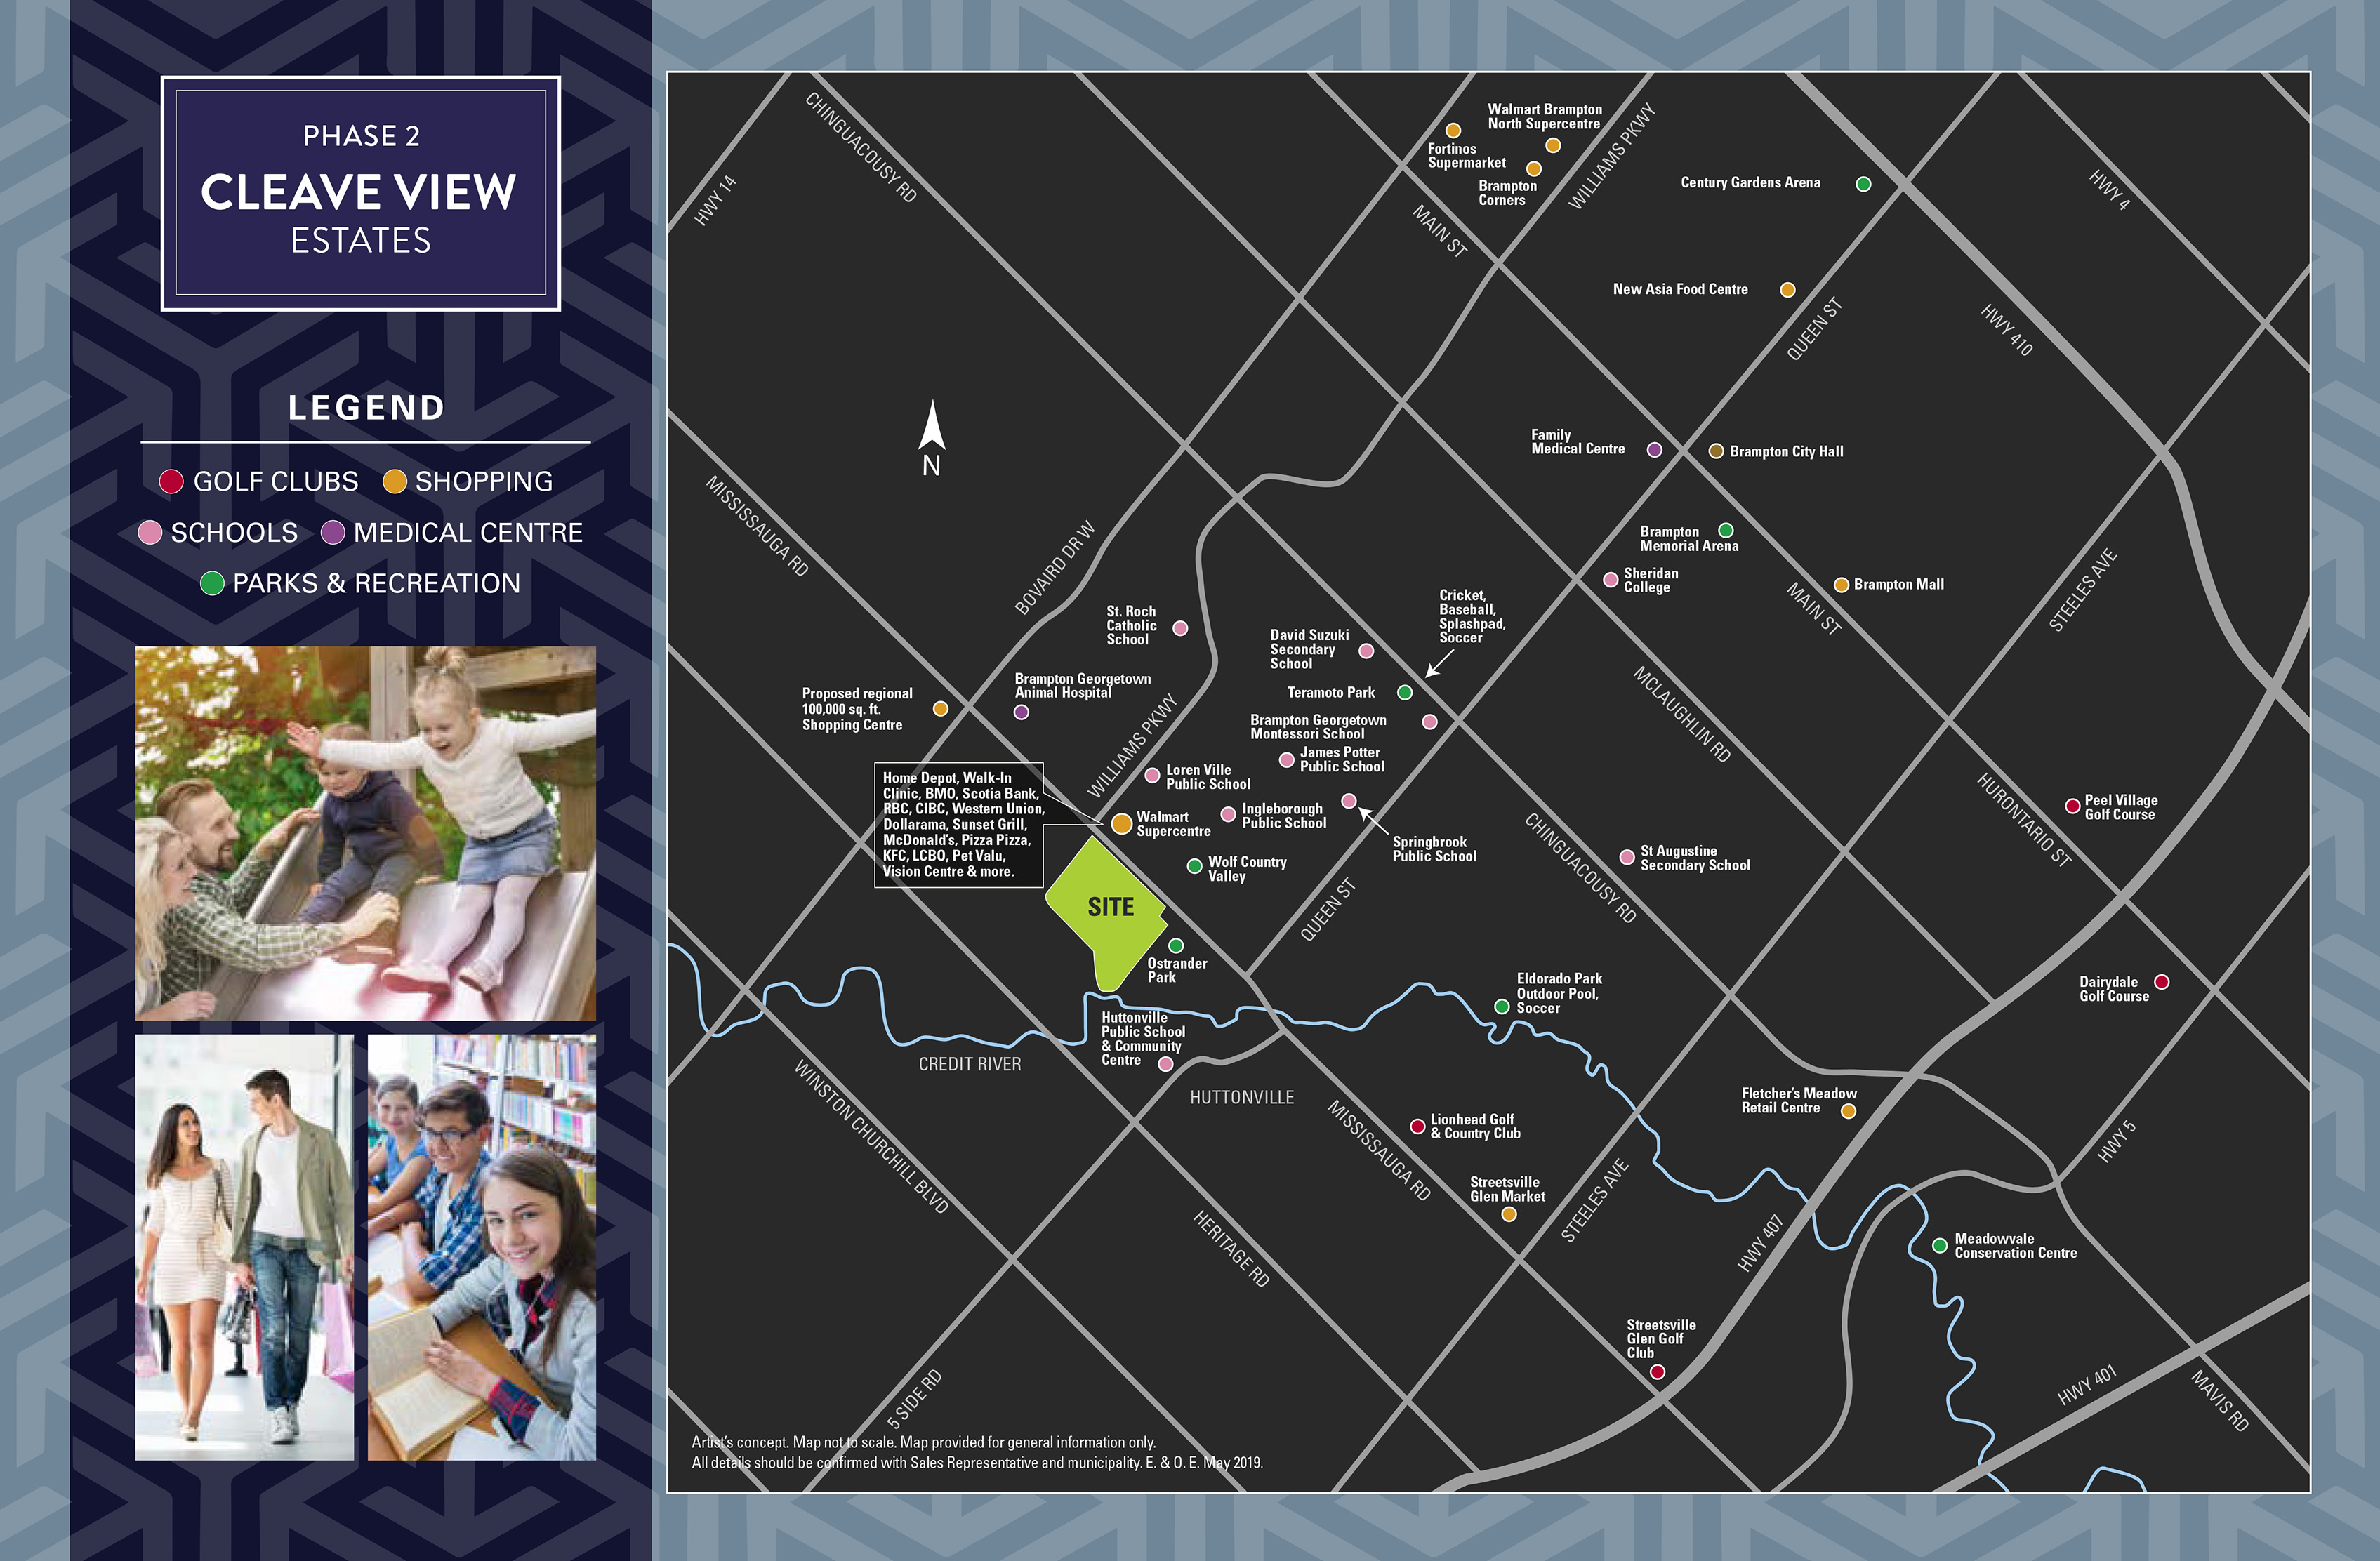 Cleave View Estates Amenities Map